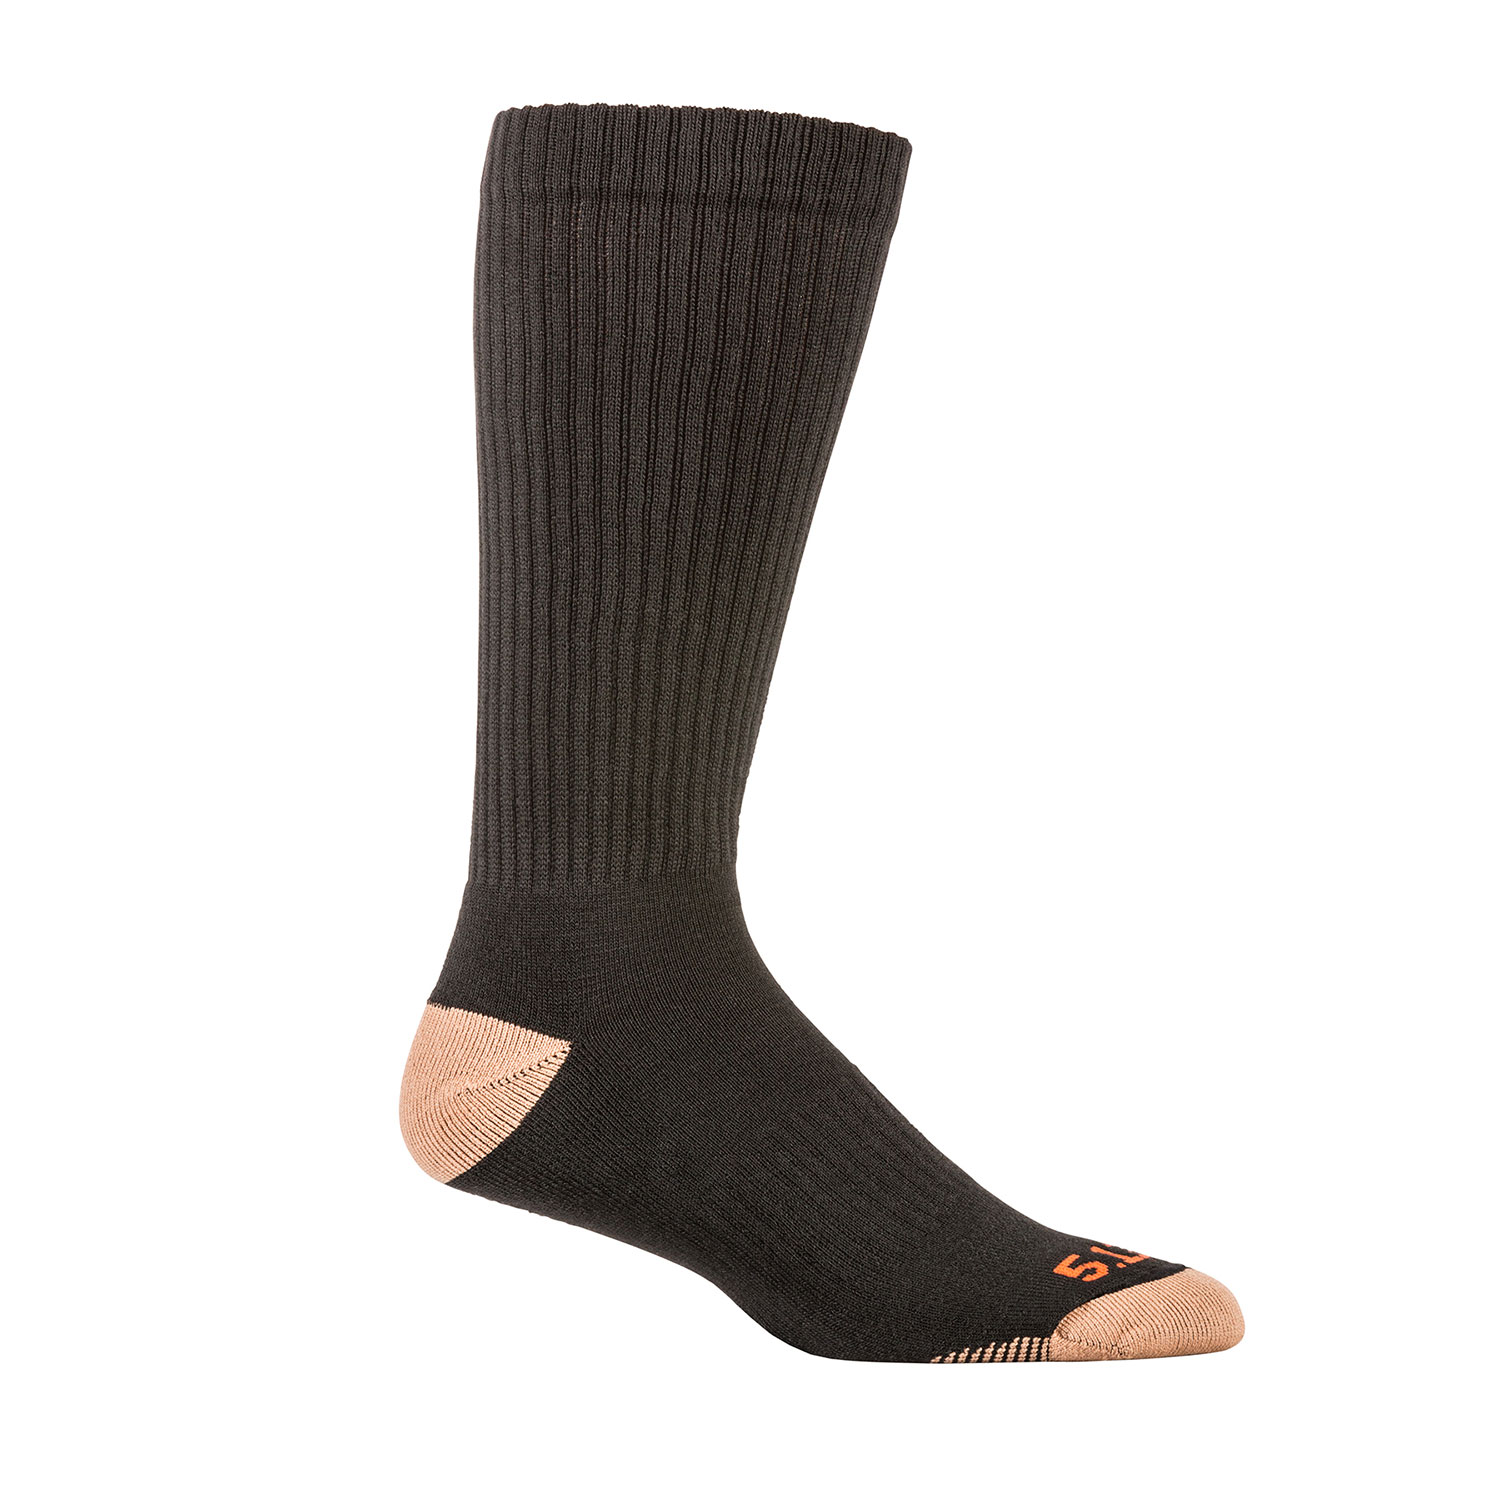 5.11 Cupron Over The Calf Socks 3 Pack